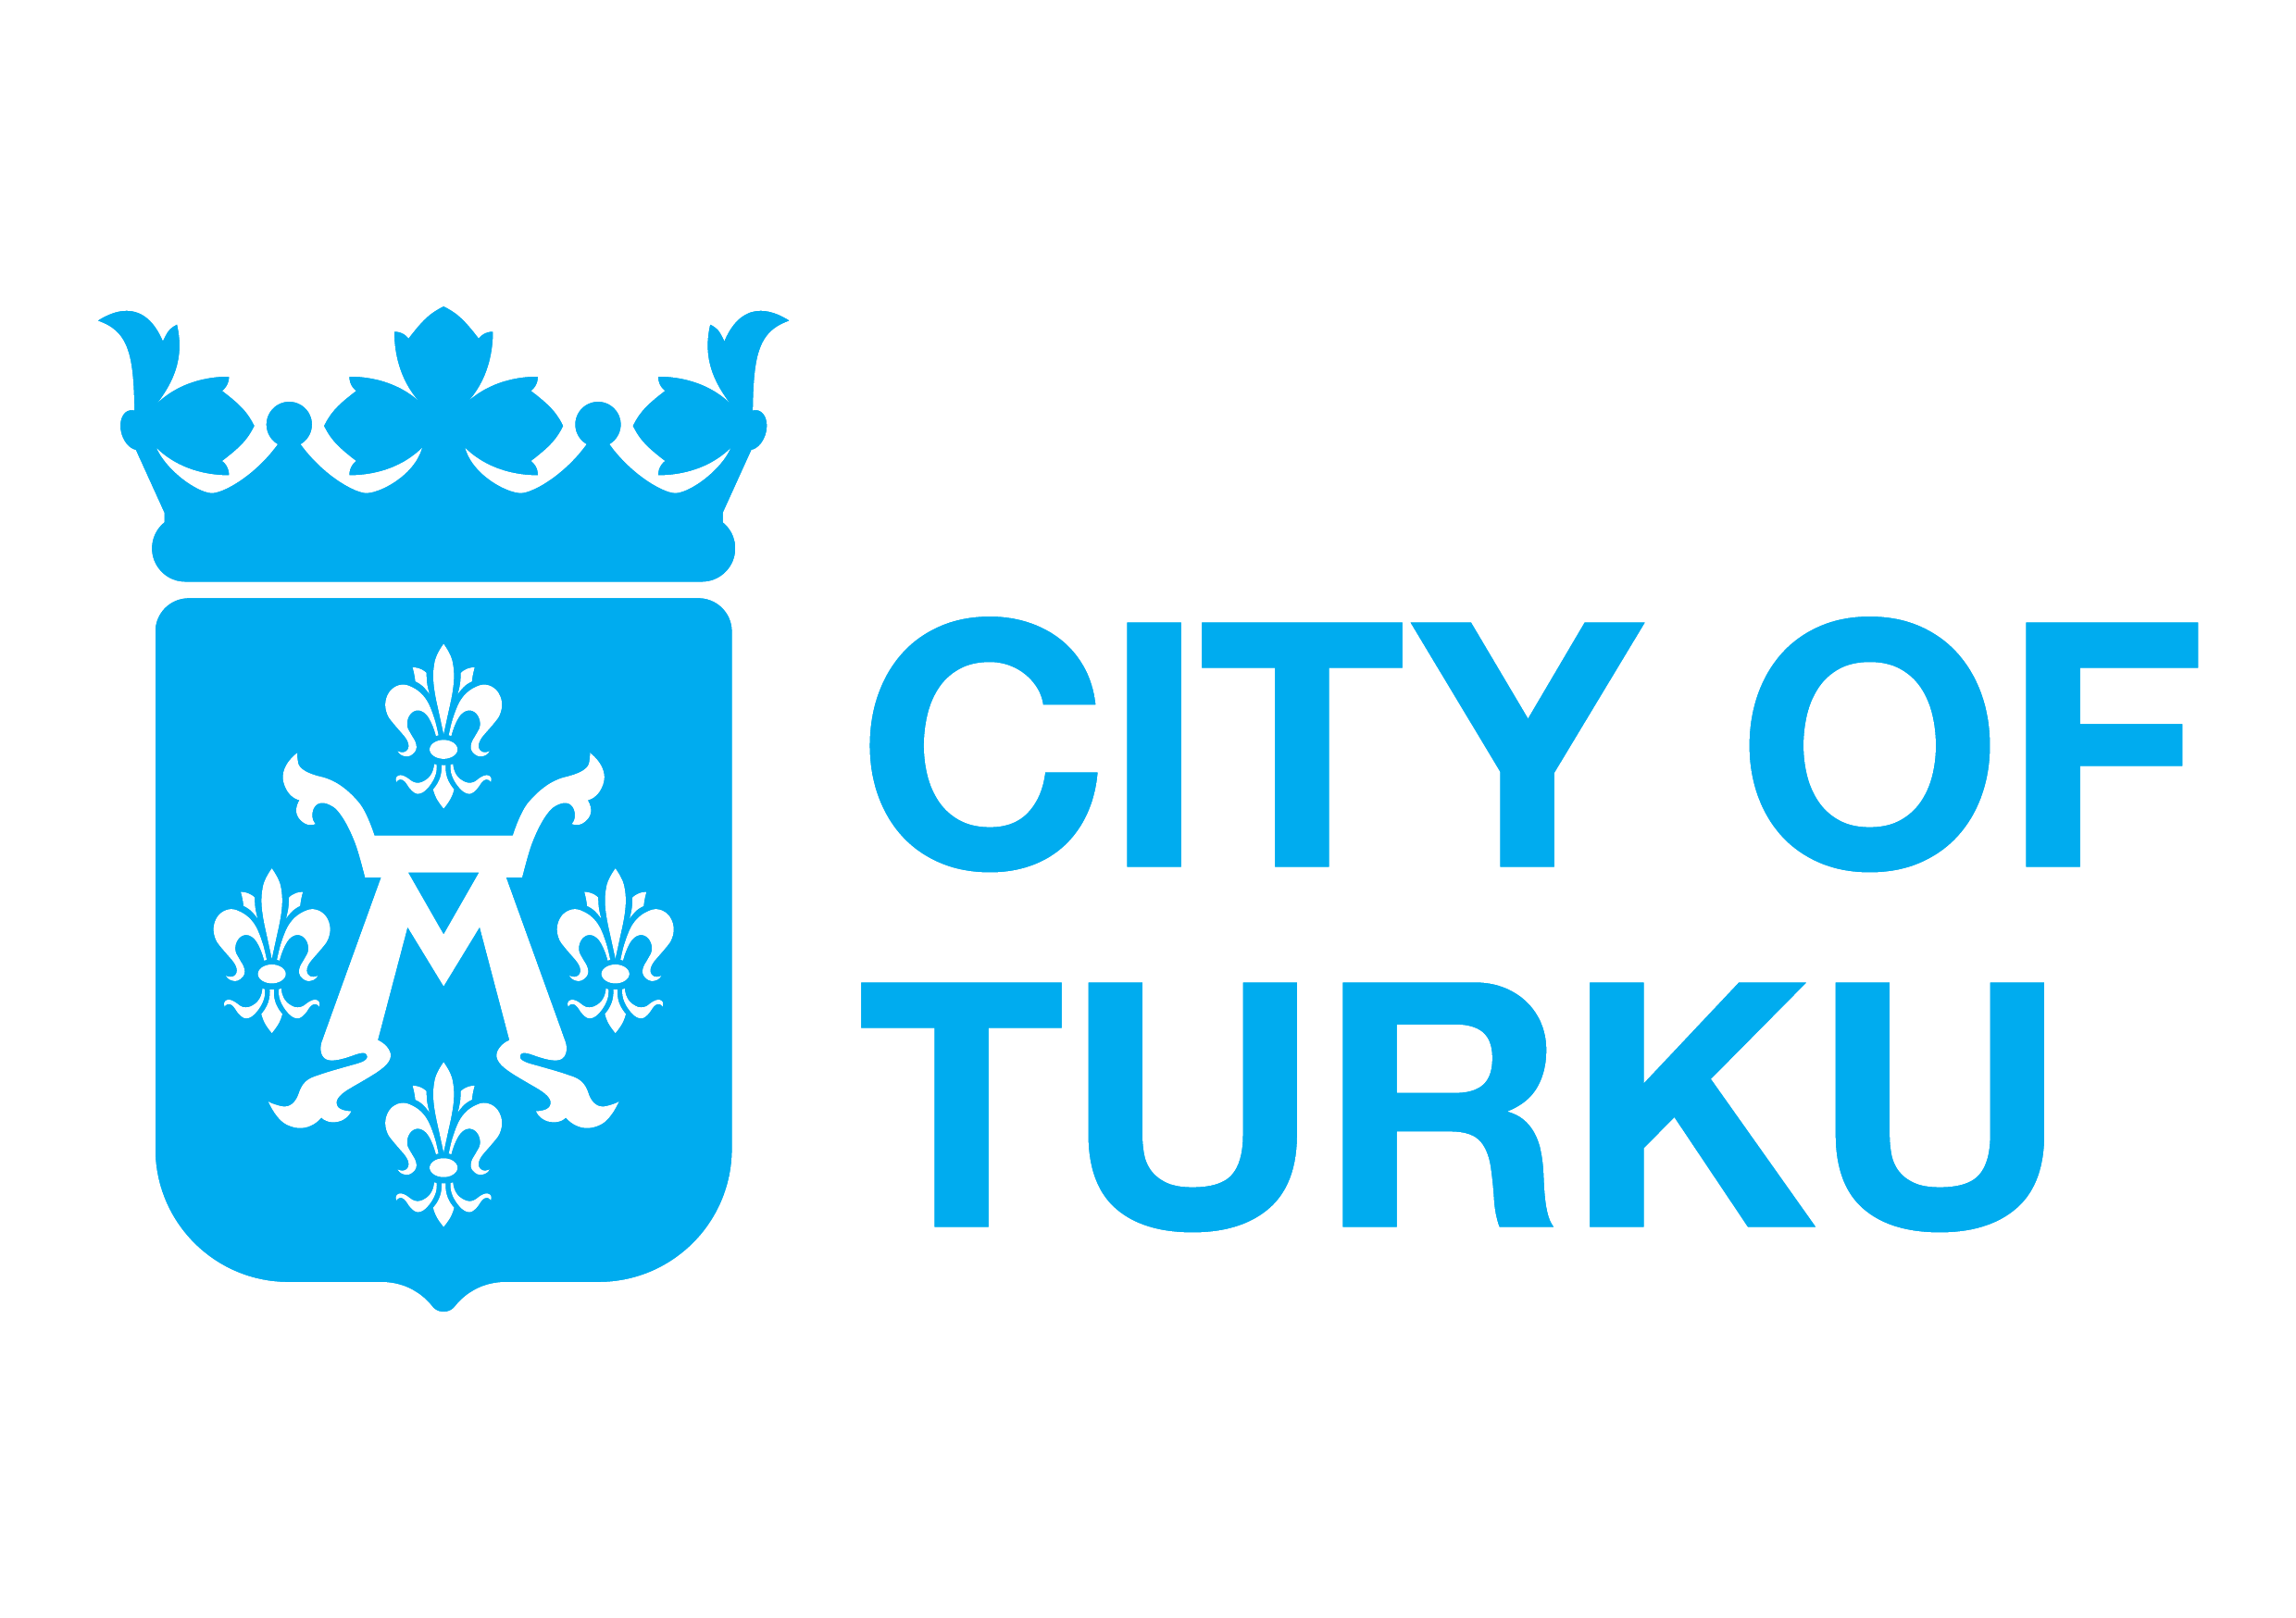 City of Turku